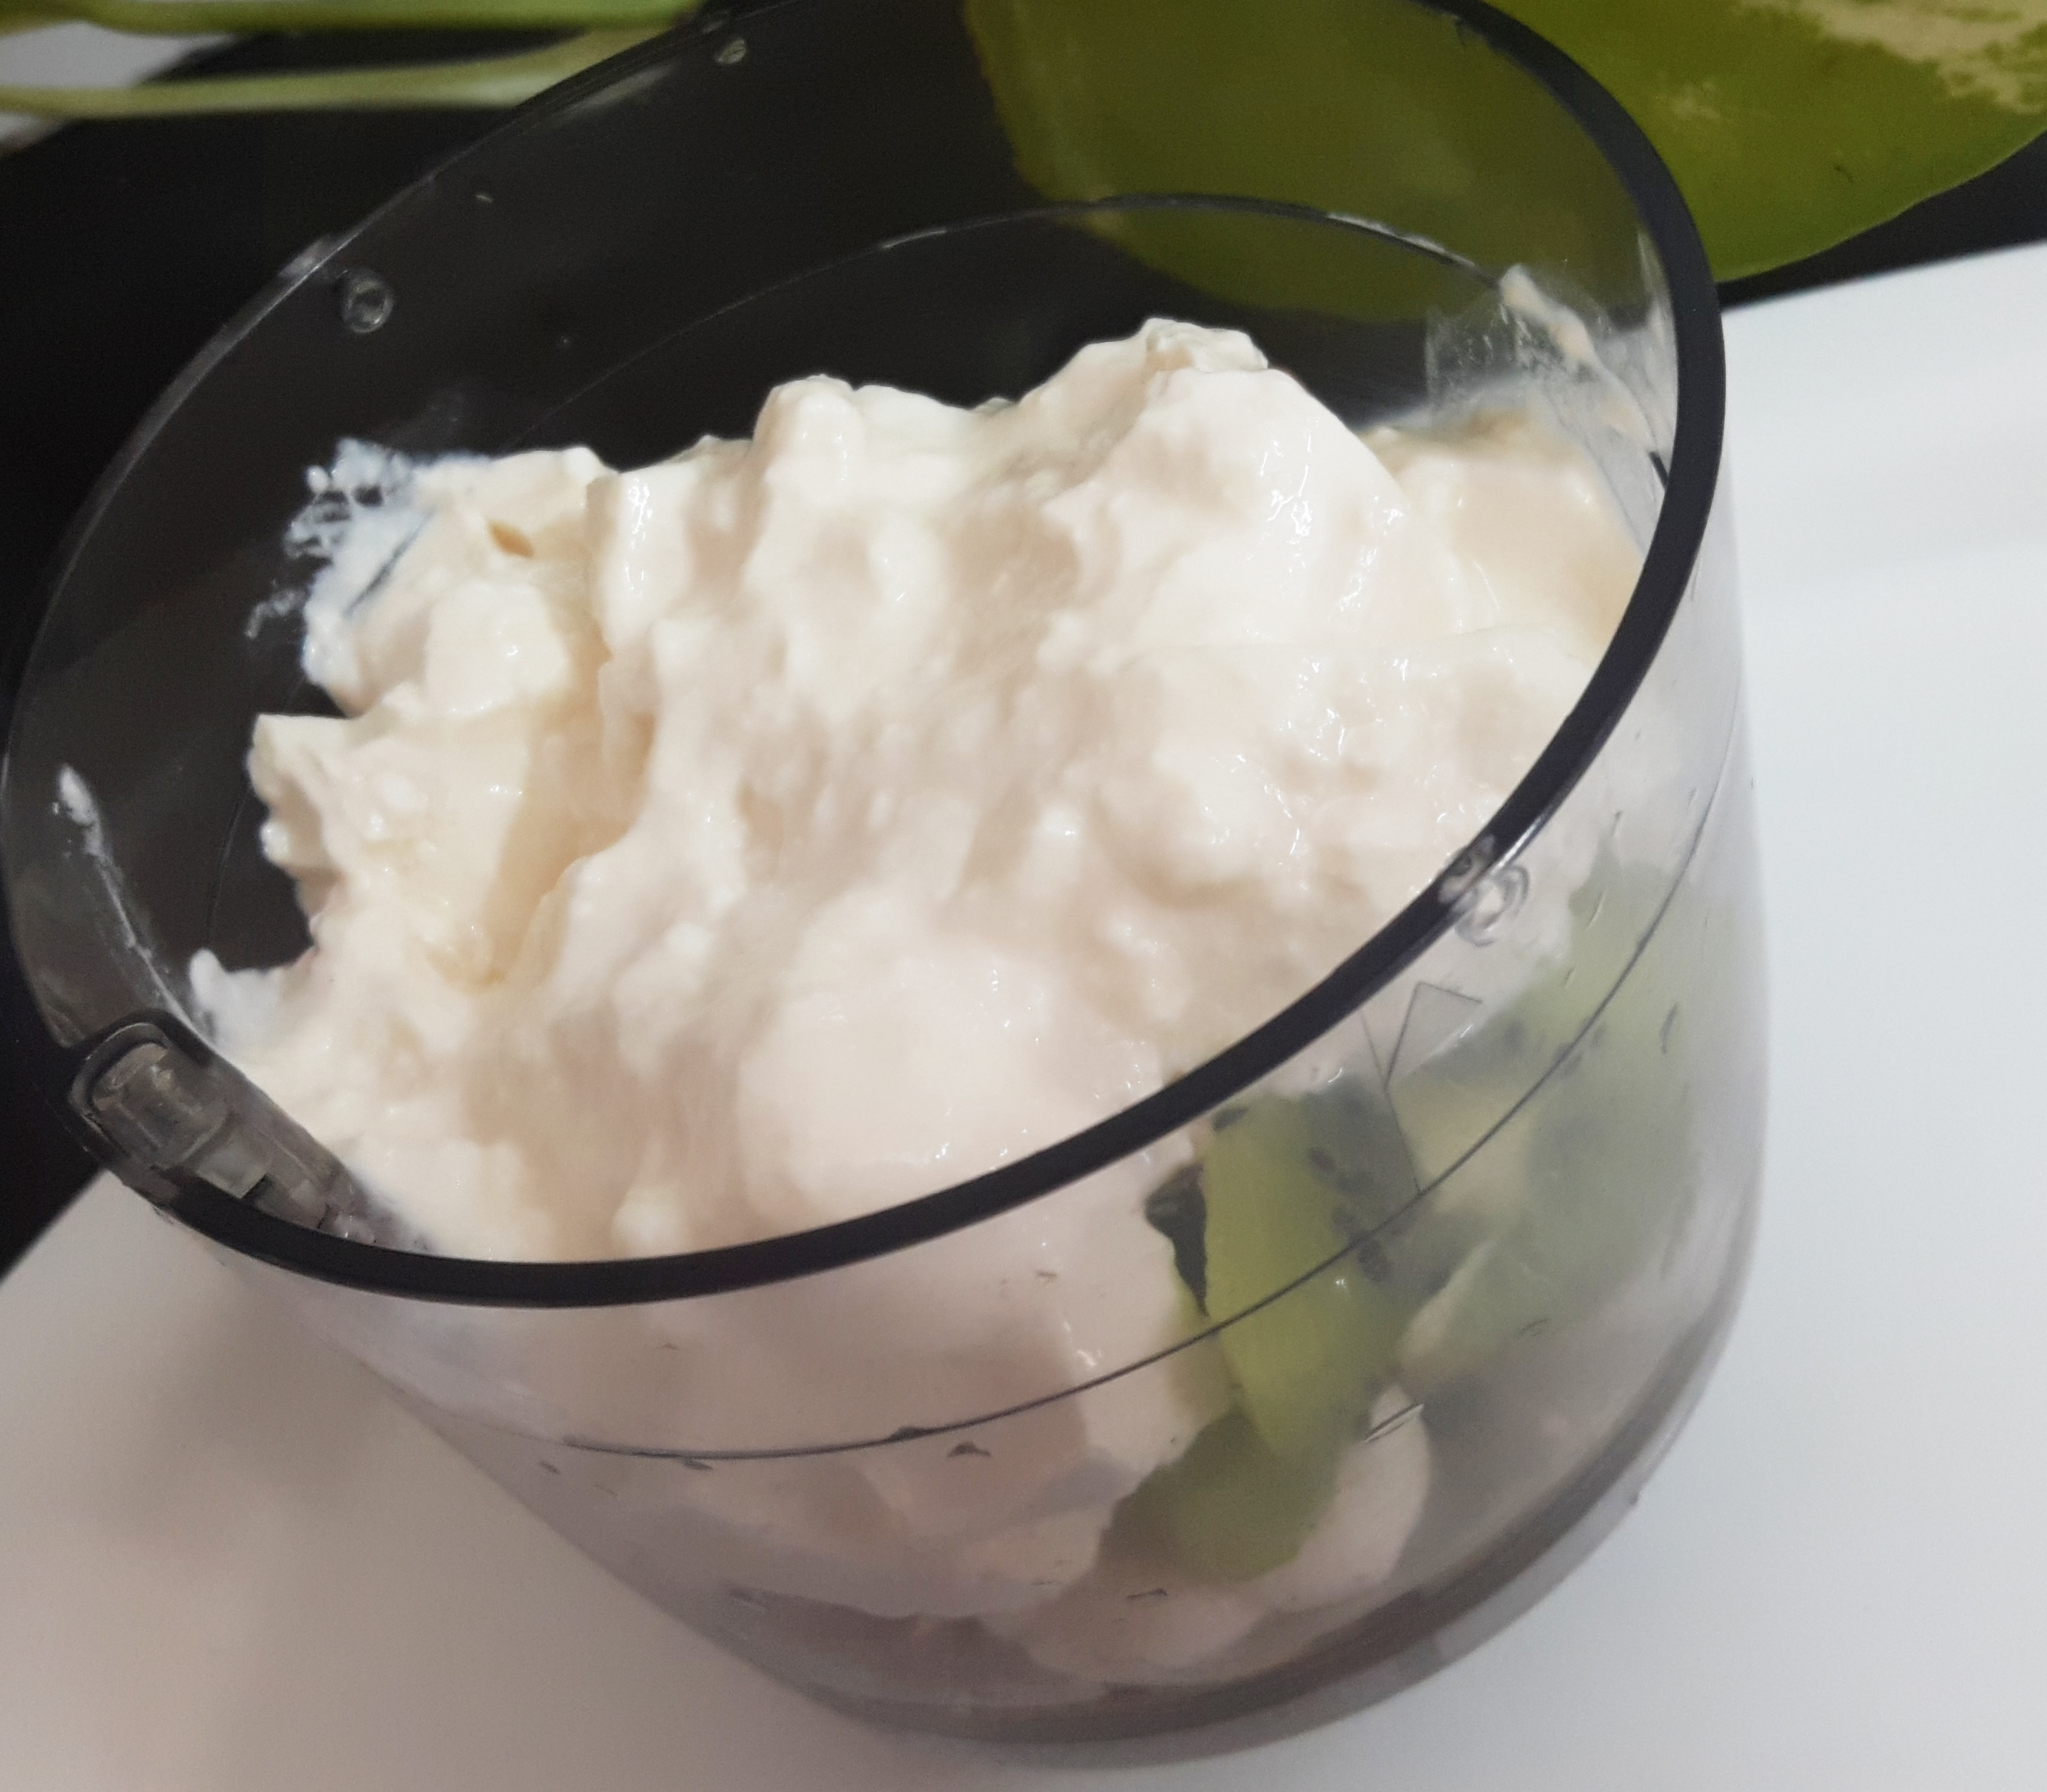 put chopped kiwi and banana along with all ingredients